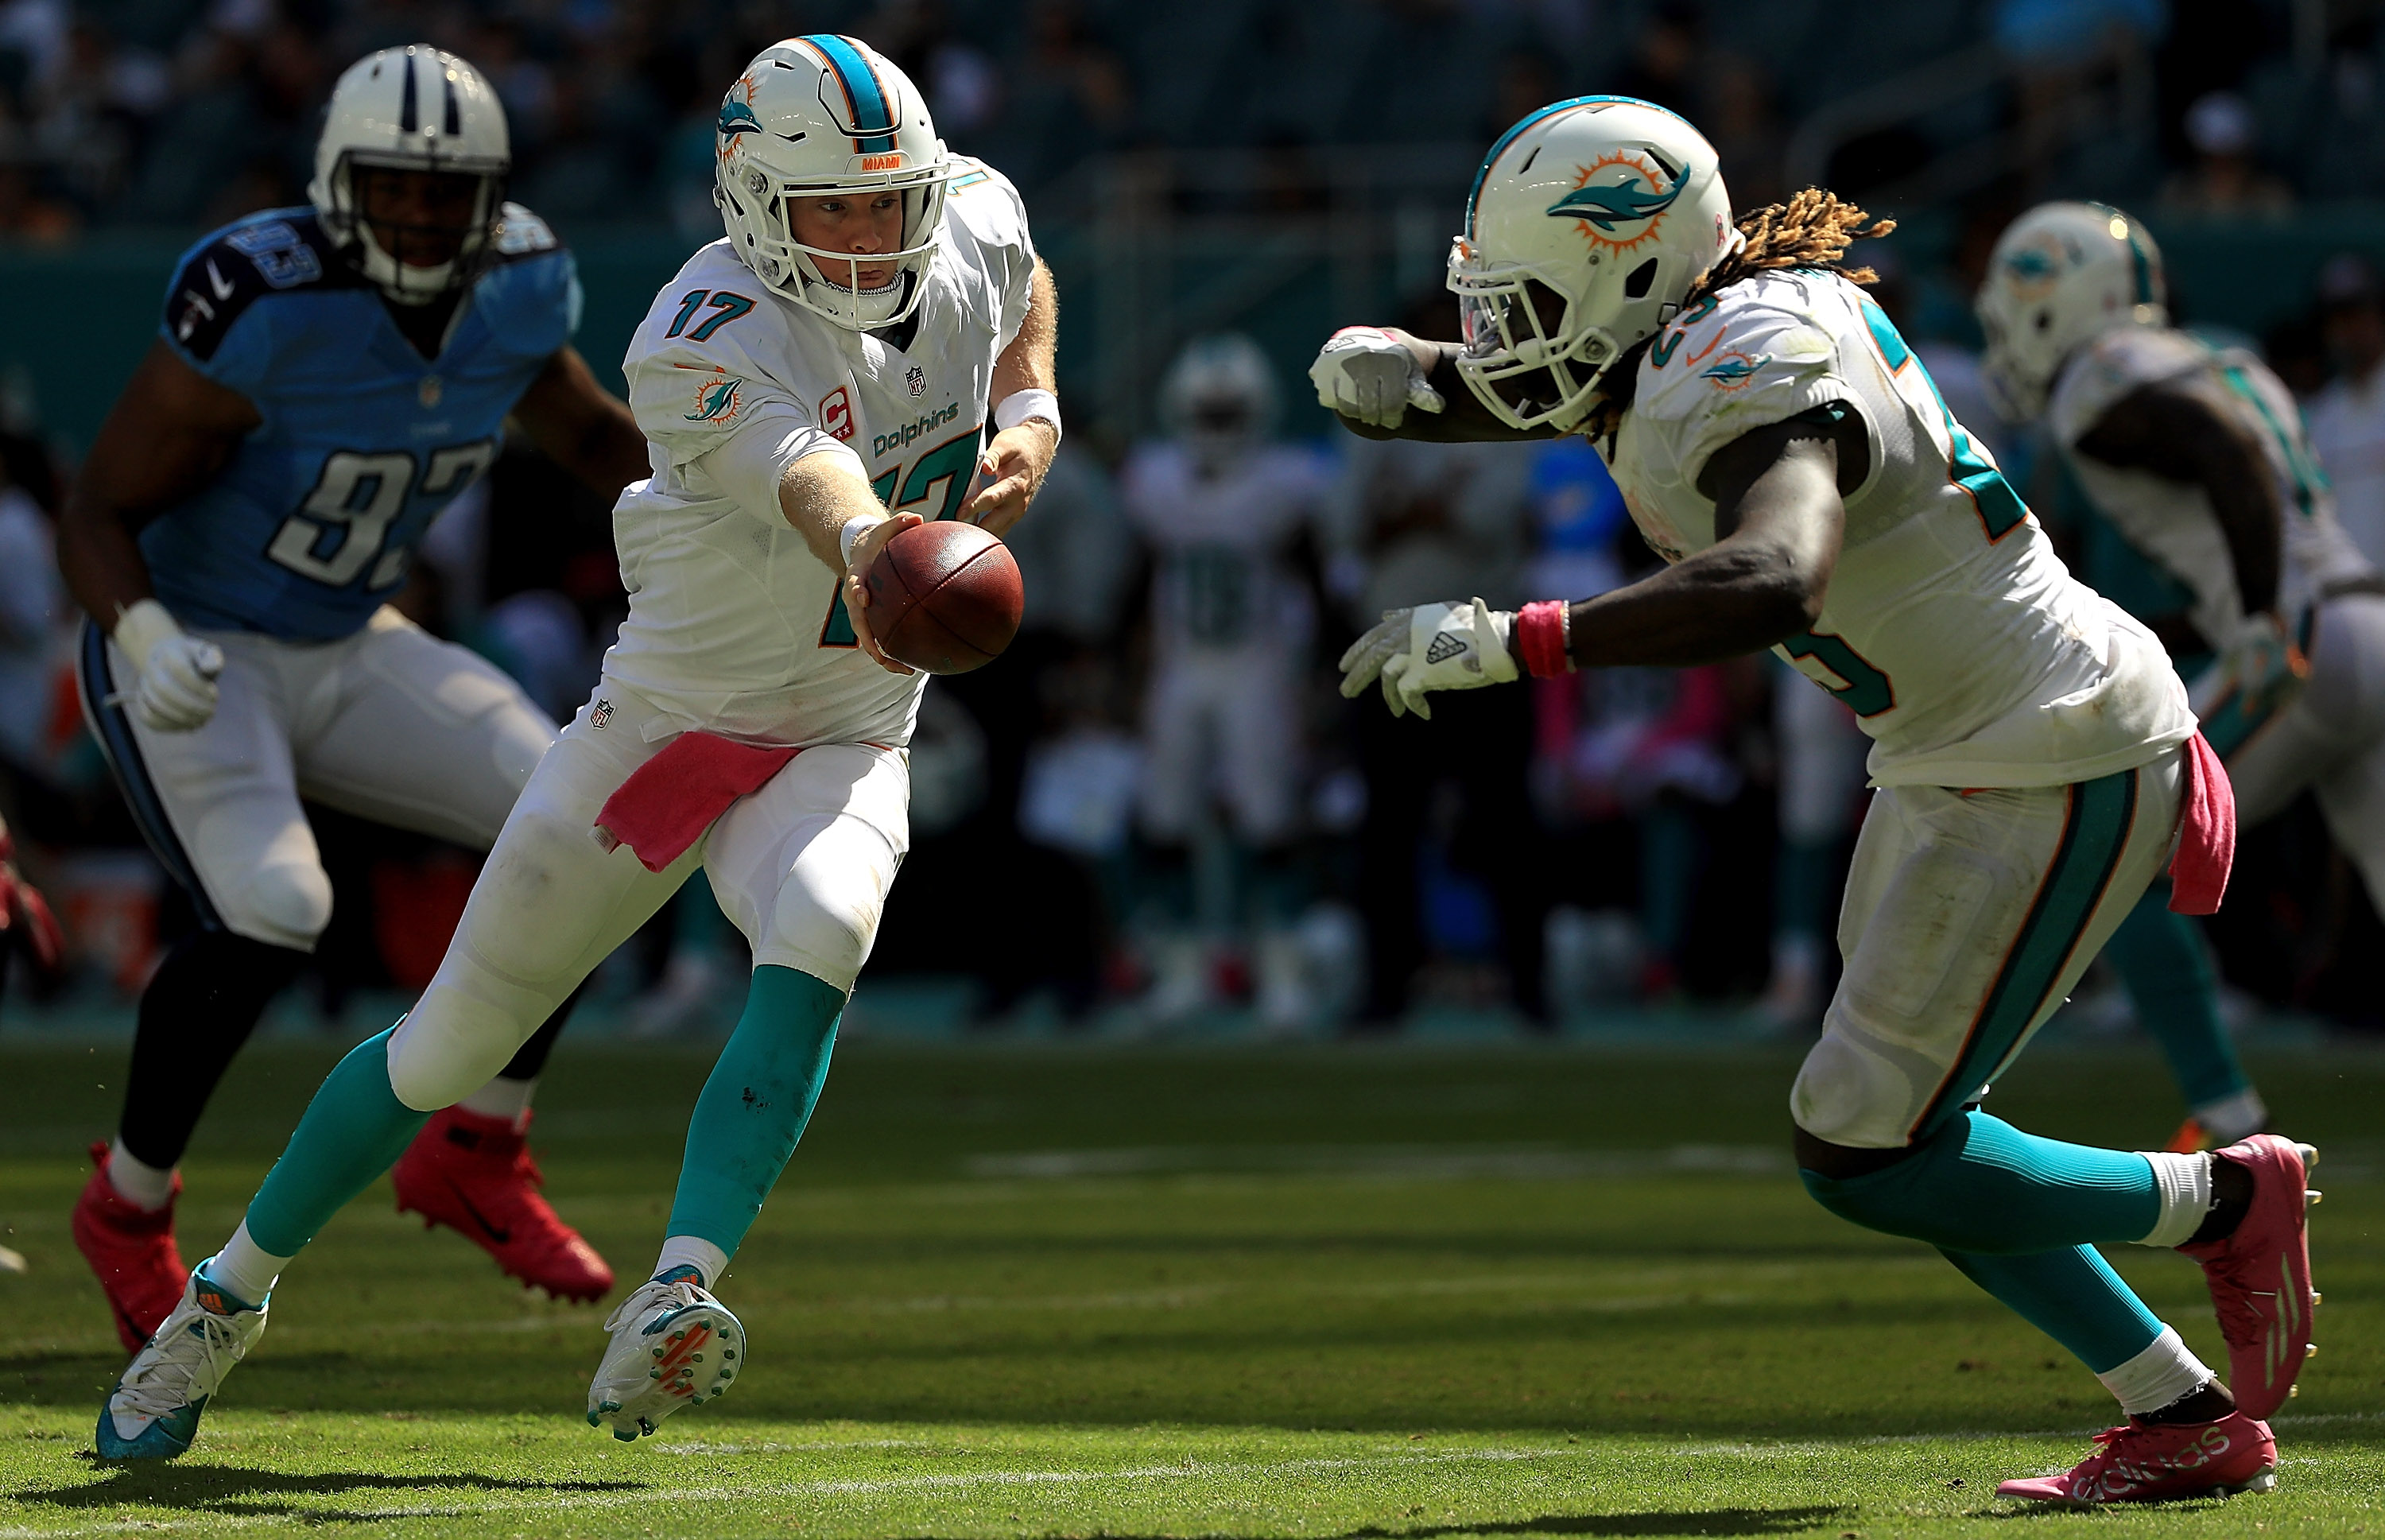 Ryan Tannehill #17 of the Miami Dolphins hands off to Jay Ajayi #23 during a game against the Tennessee Titans on Oct. 9, 2016 in Miami Gardens, Florida. (Photo by Mike Ehrmann/Getty Images)